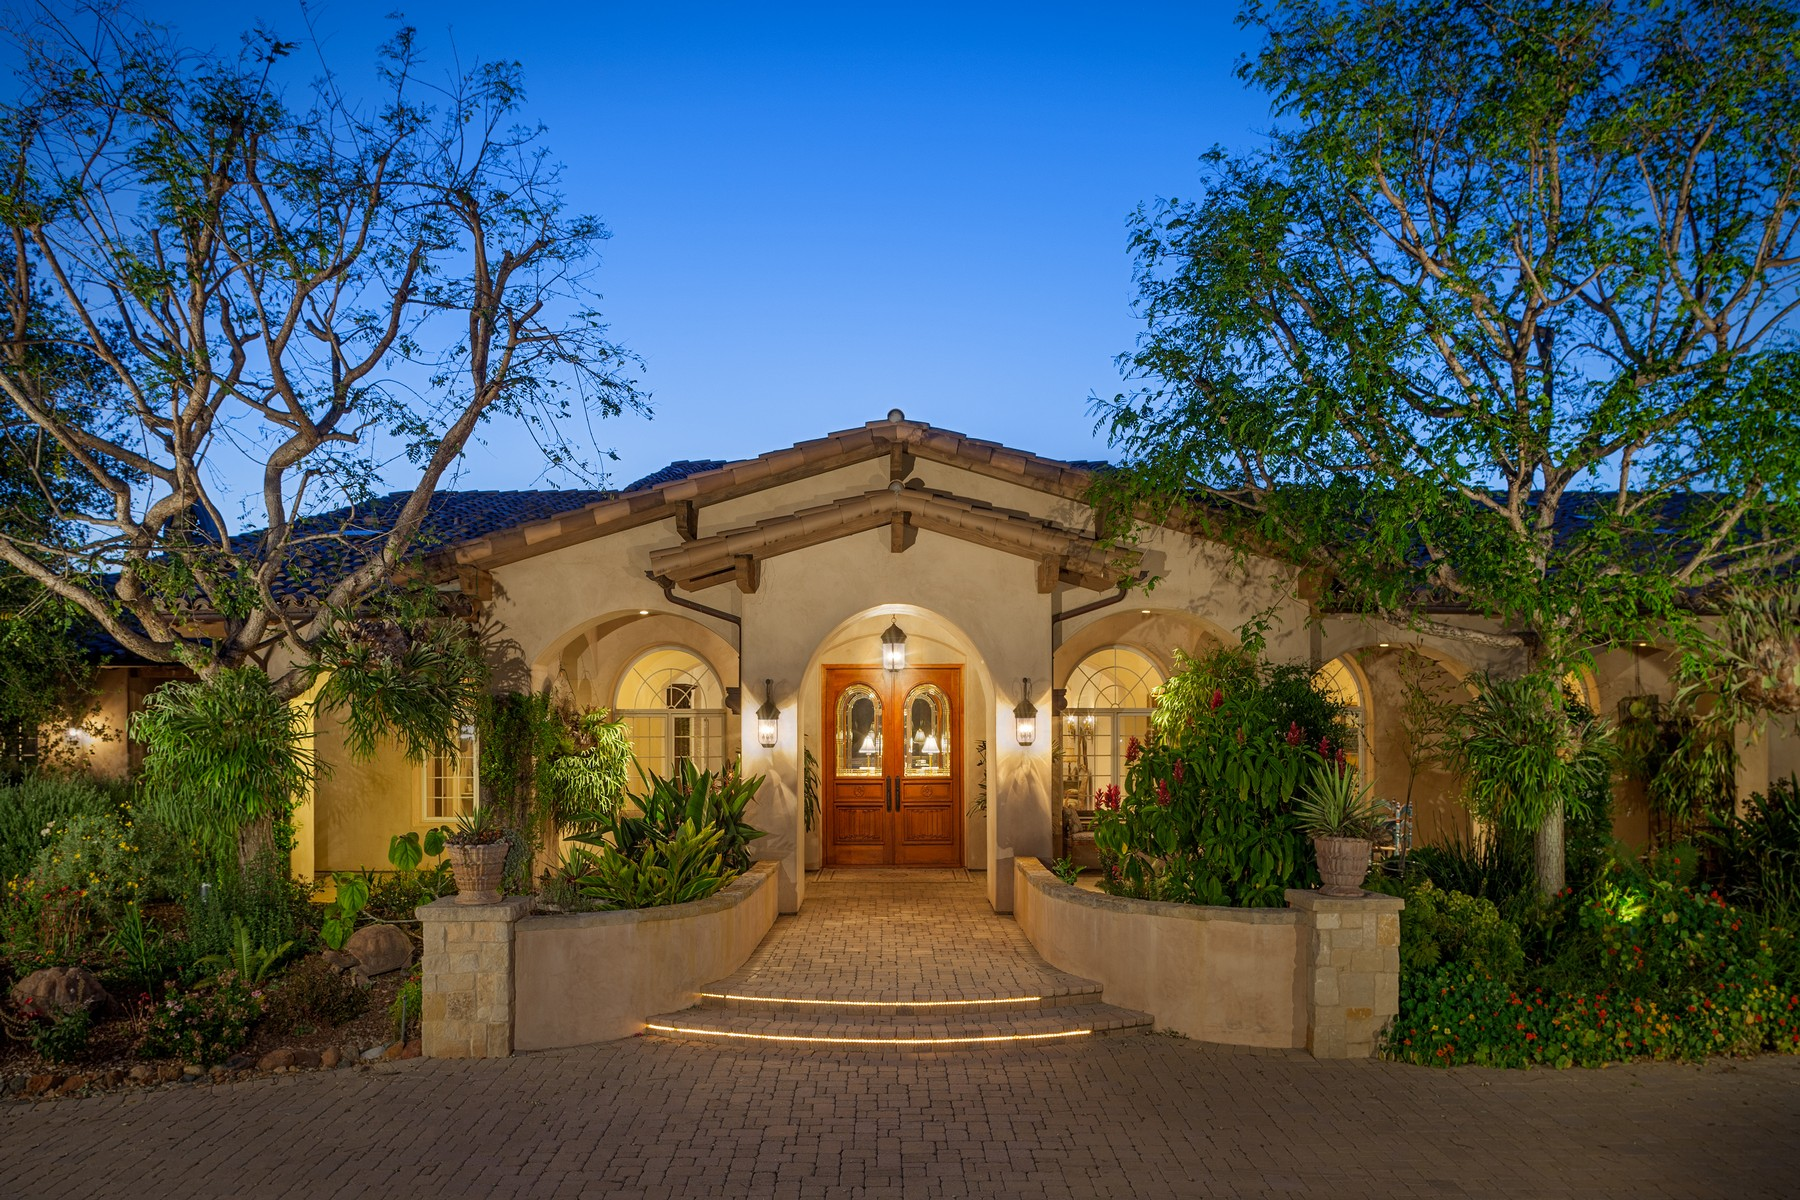 Single Family Home for Sale at 7099 El Camino Del Norte Rancho Santa Fe, California, 92067 United States